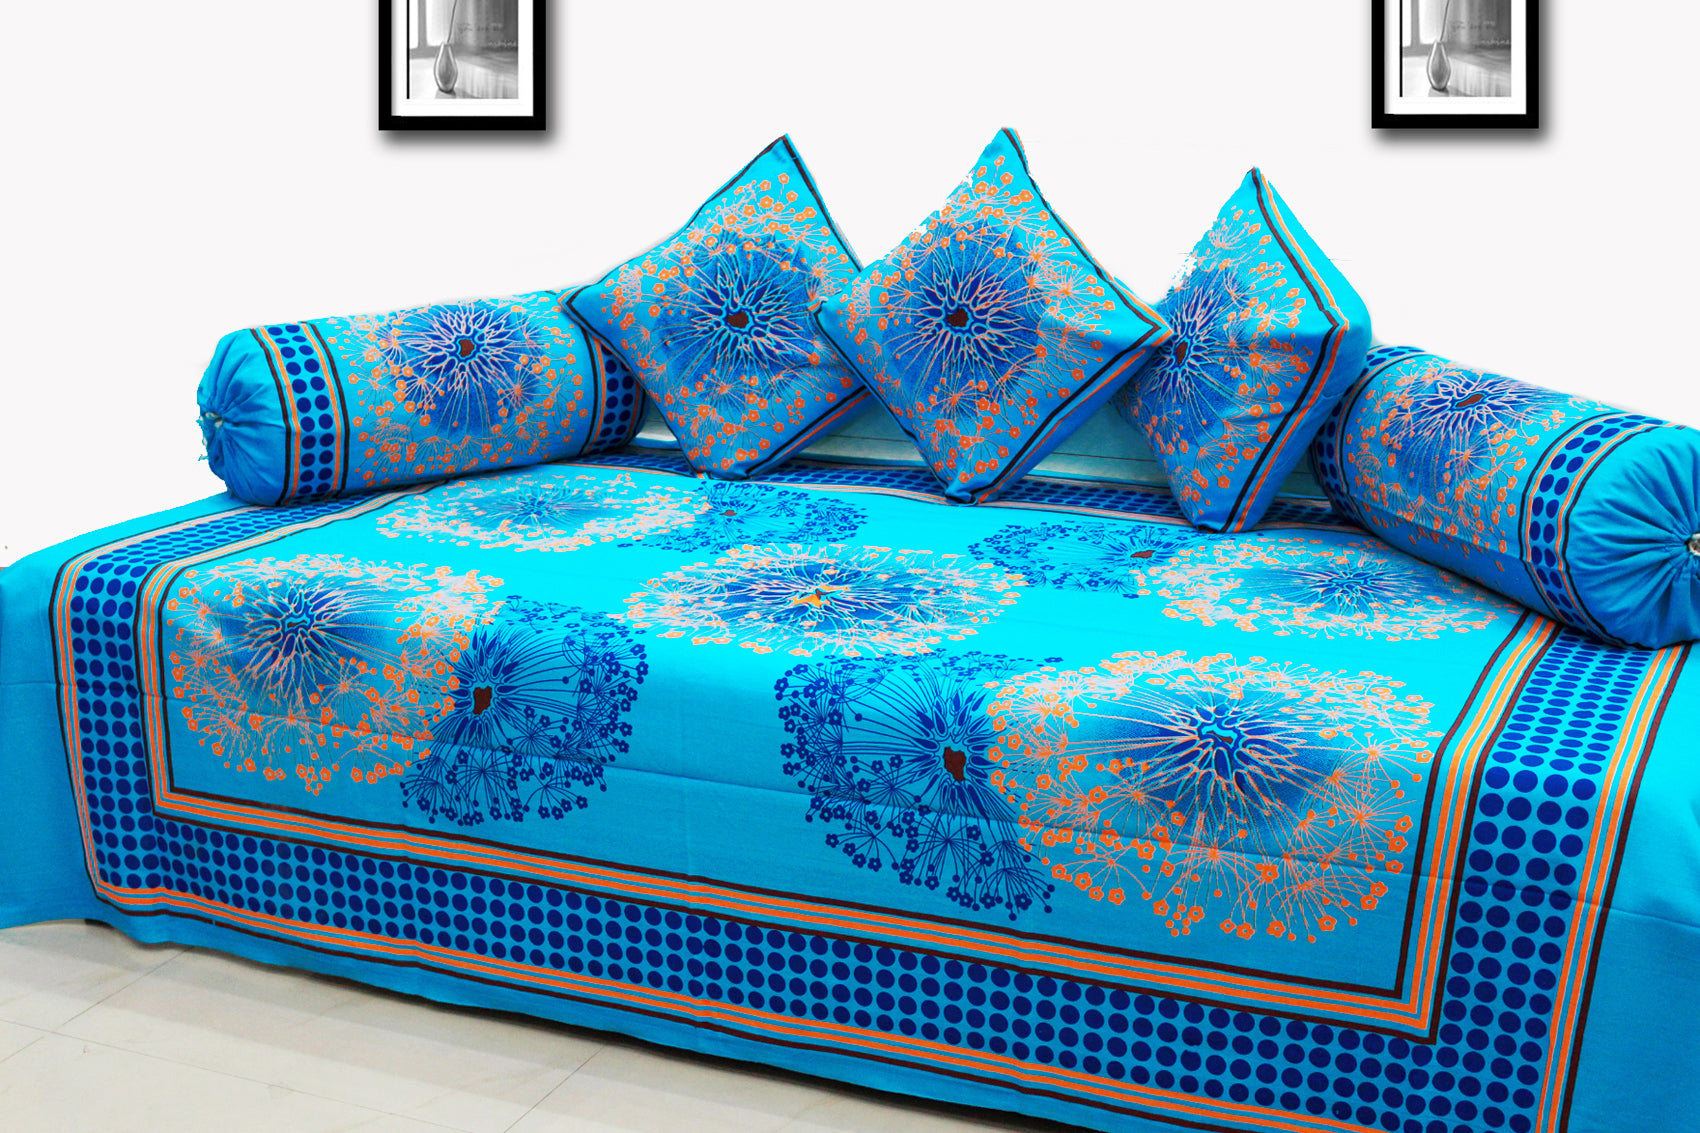 AURAVE Festive Colors Multicolor Diwan Set Cover - BLUE